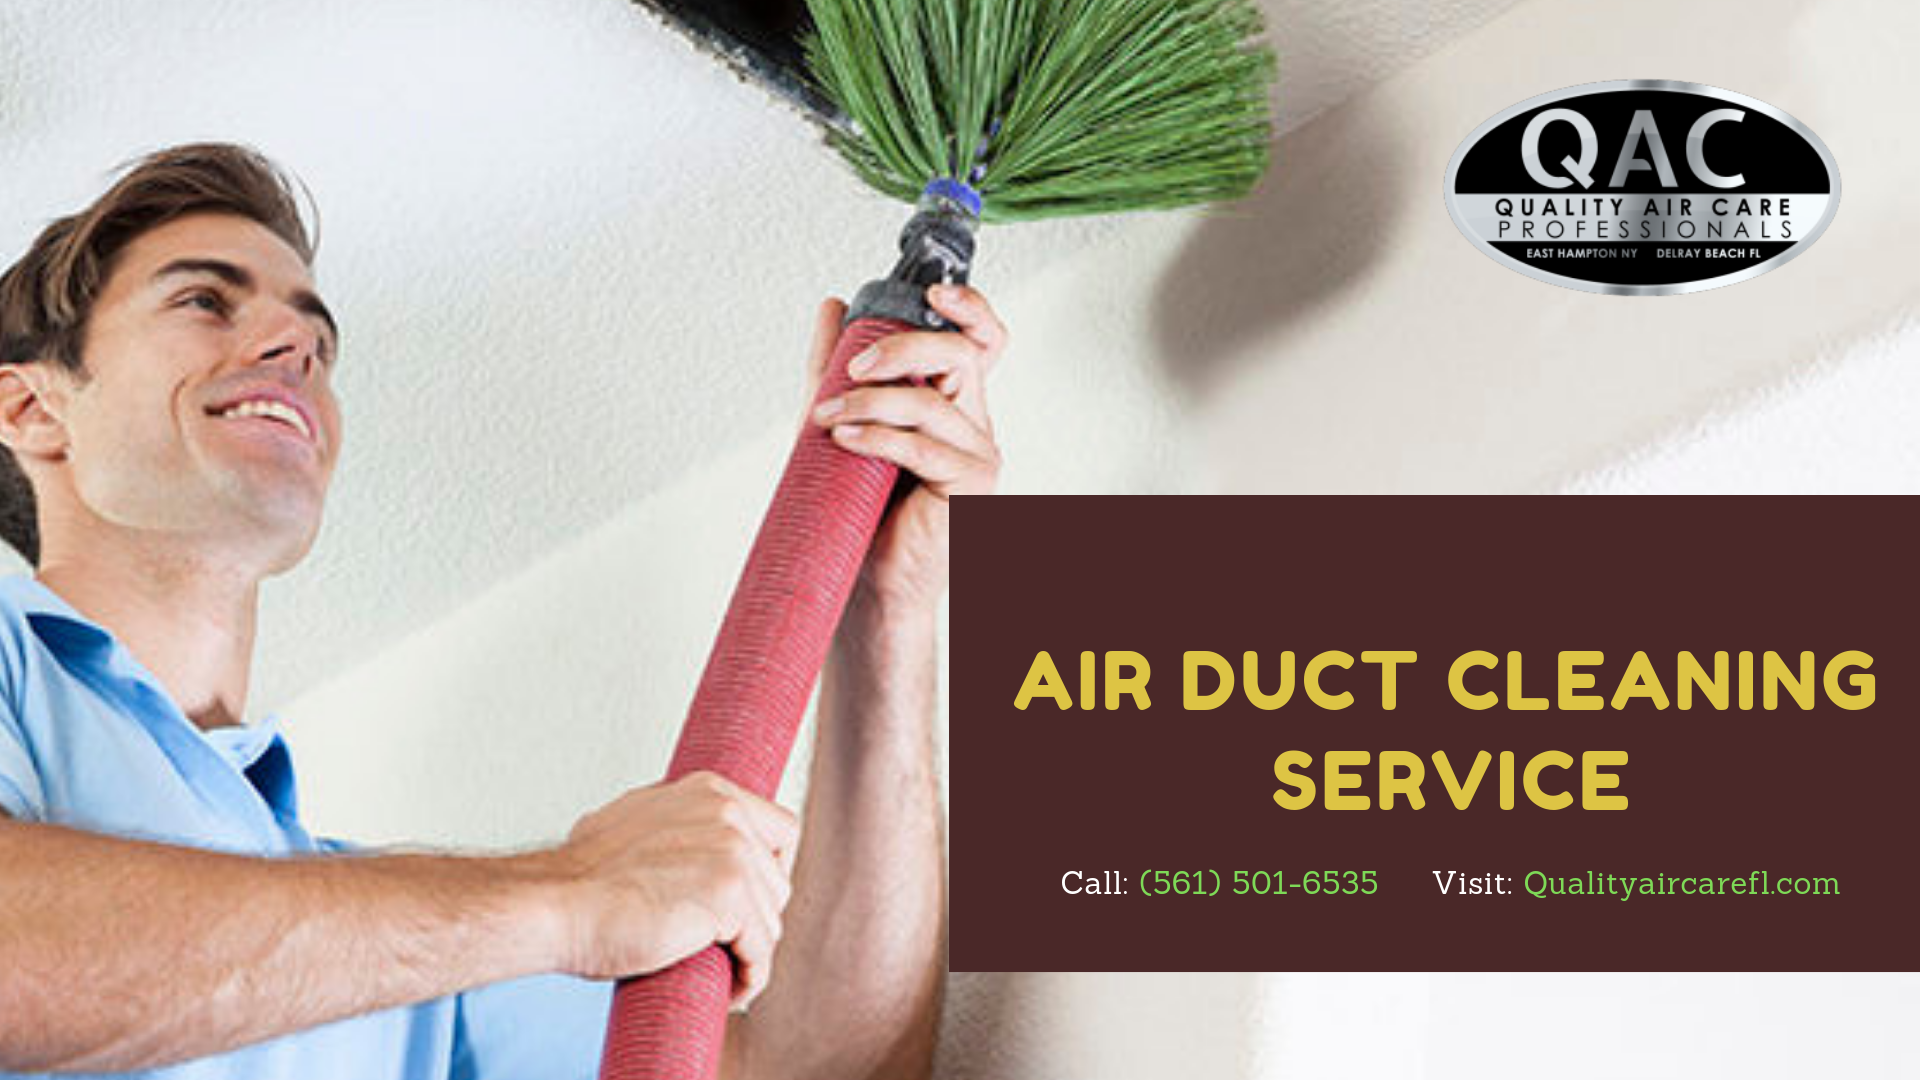 Our South Florida Air Duct Cleaning Services (With images